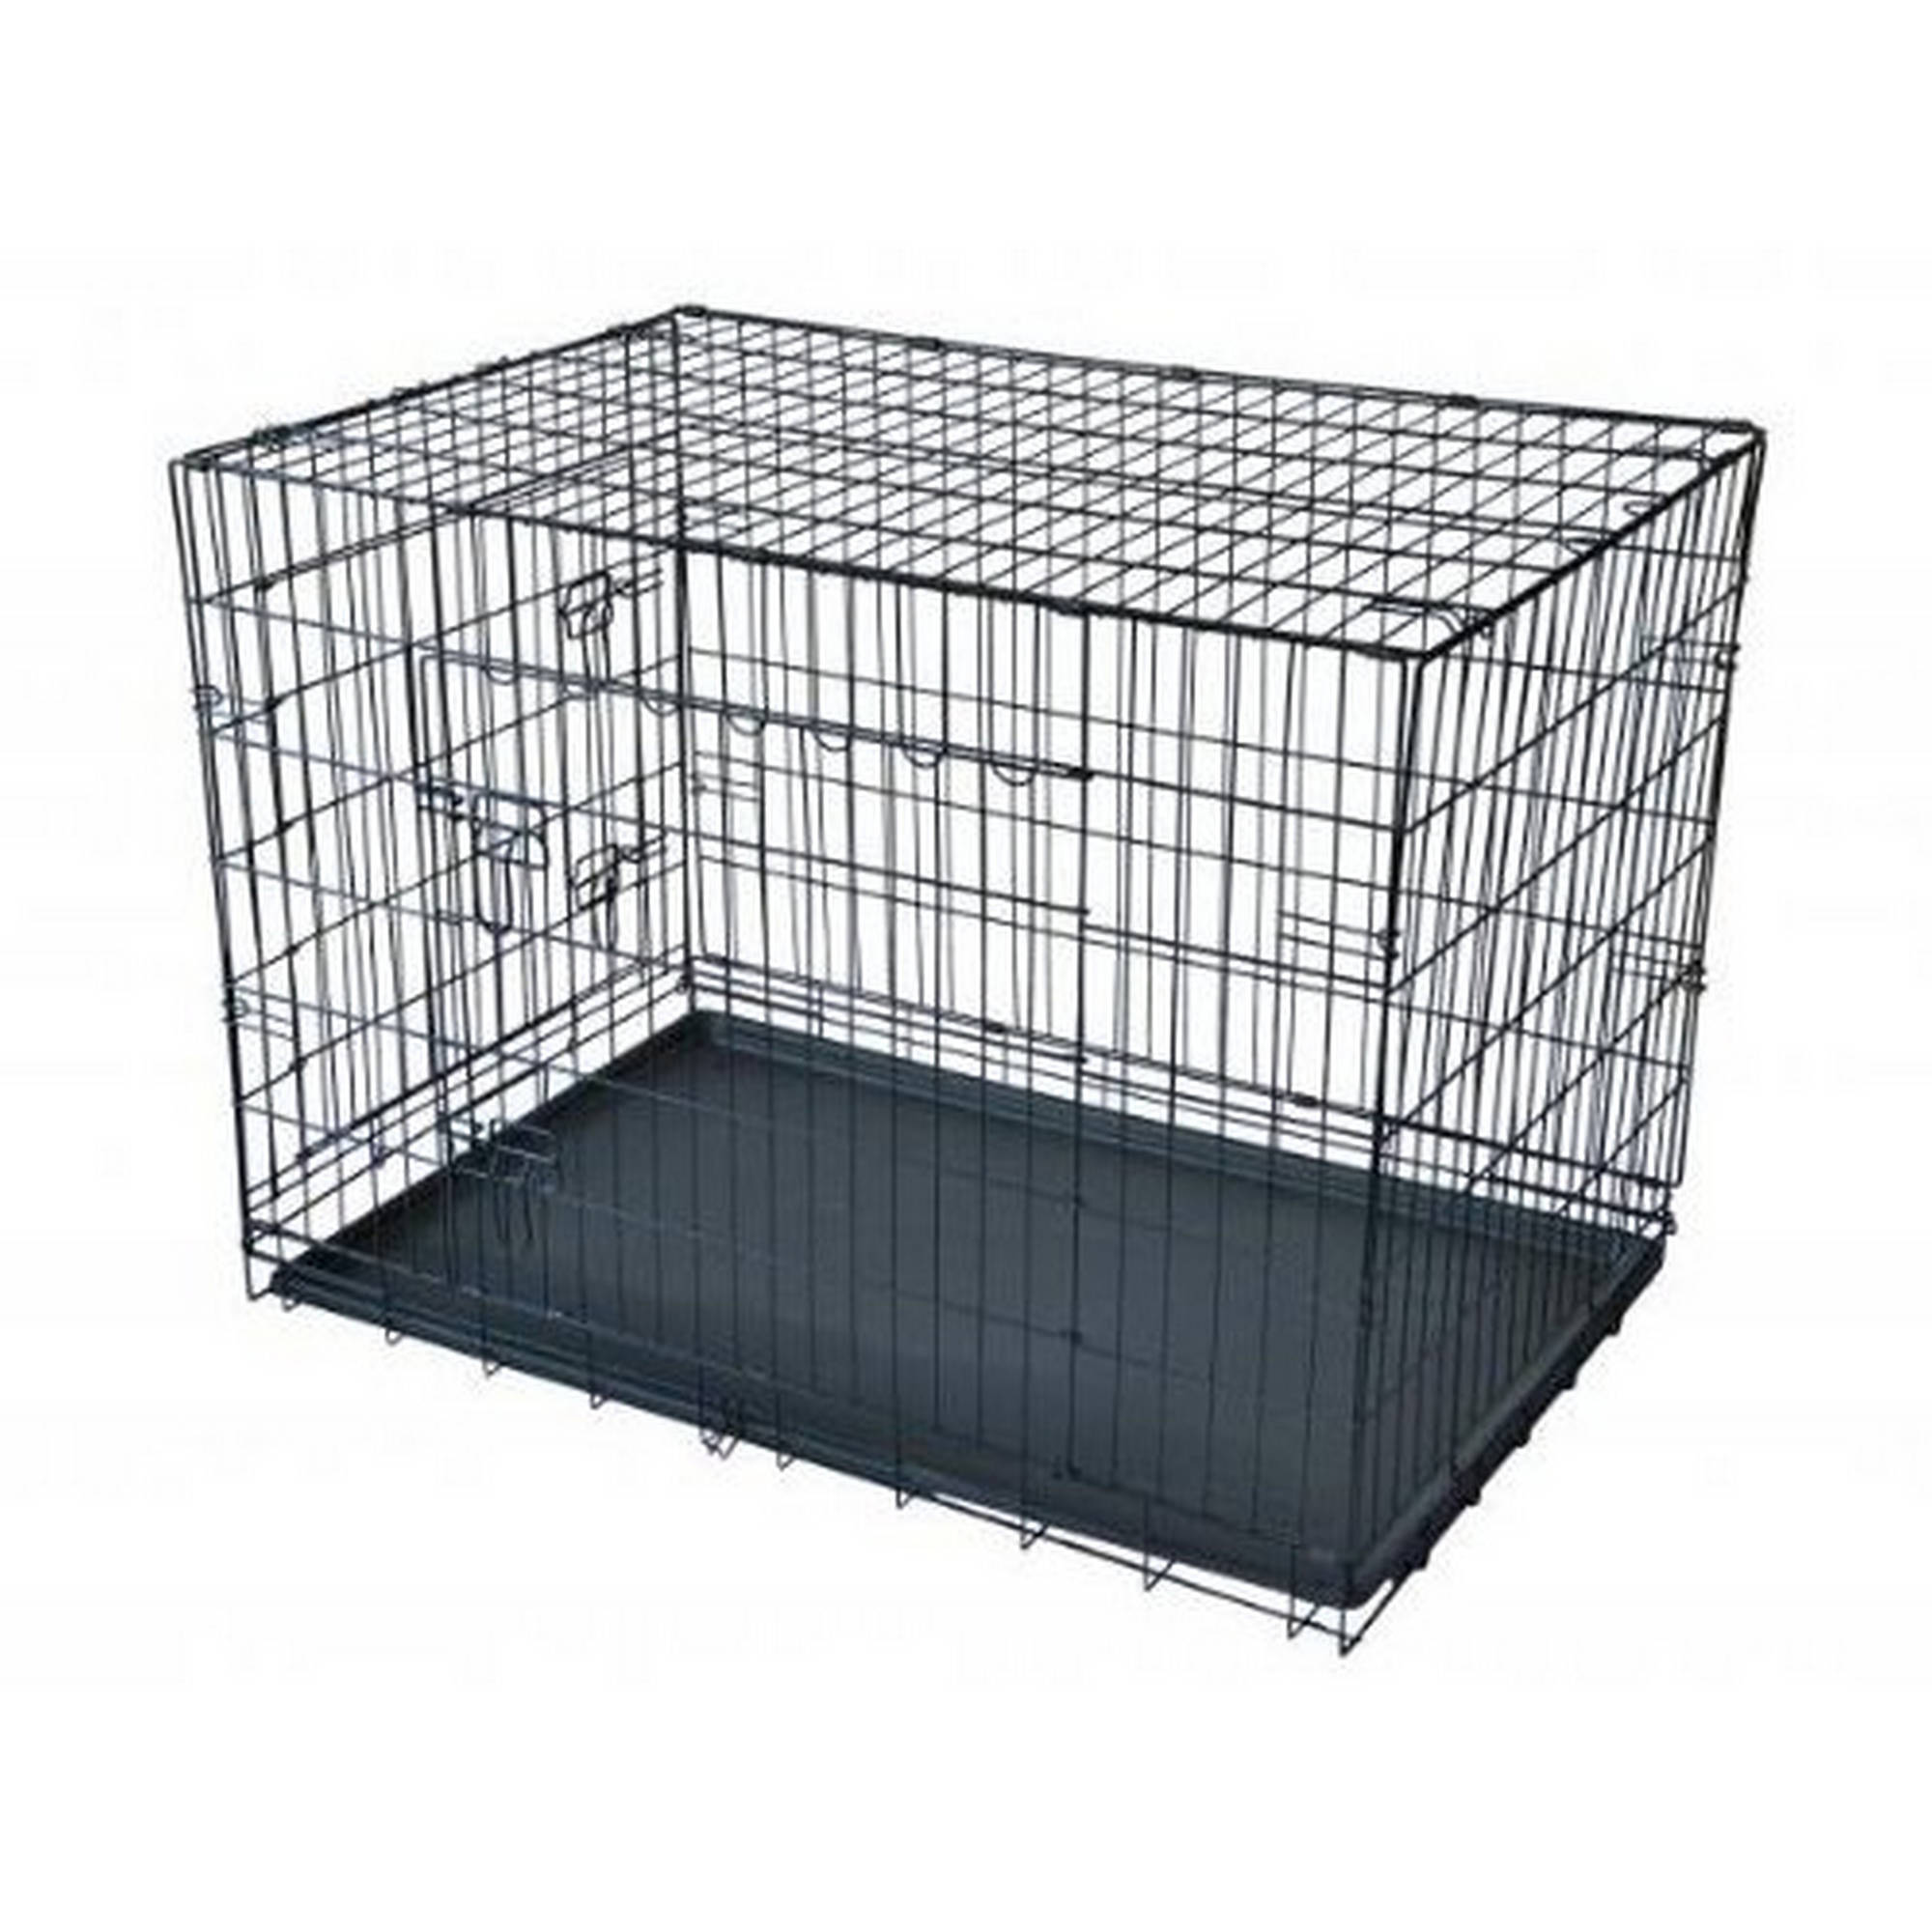 Aleko SDC-2D-48P 2-Door Dog Crate Cage